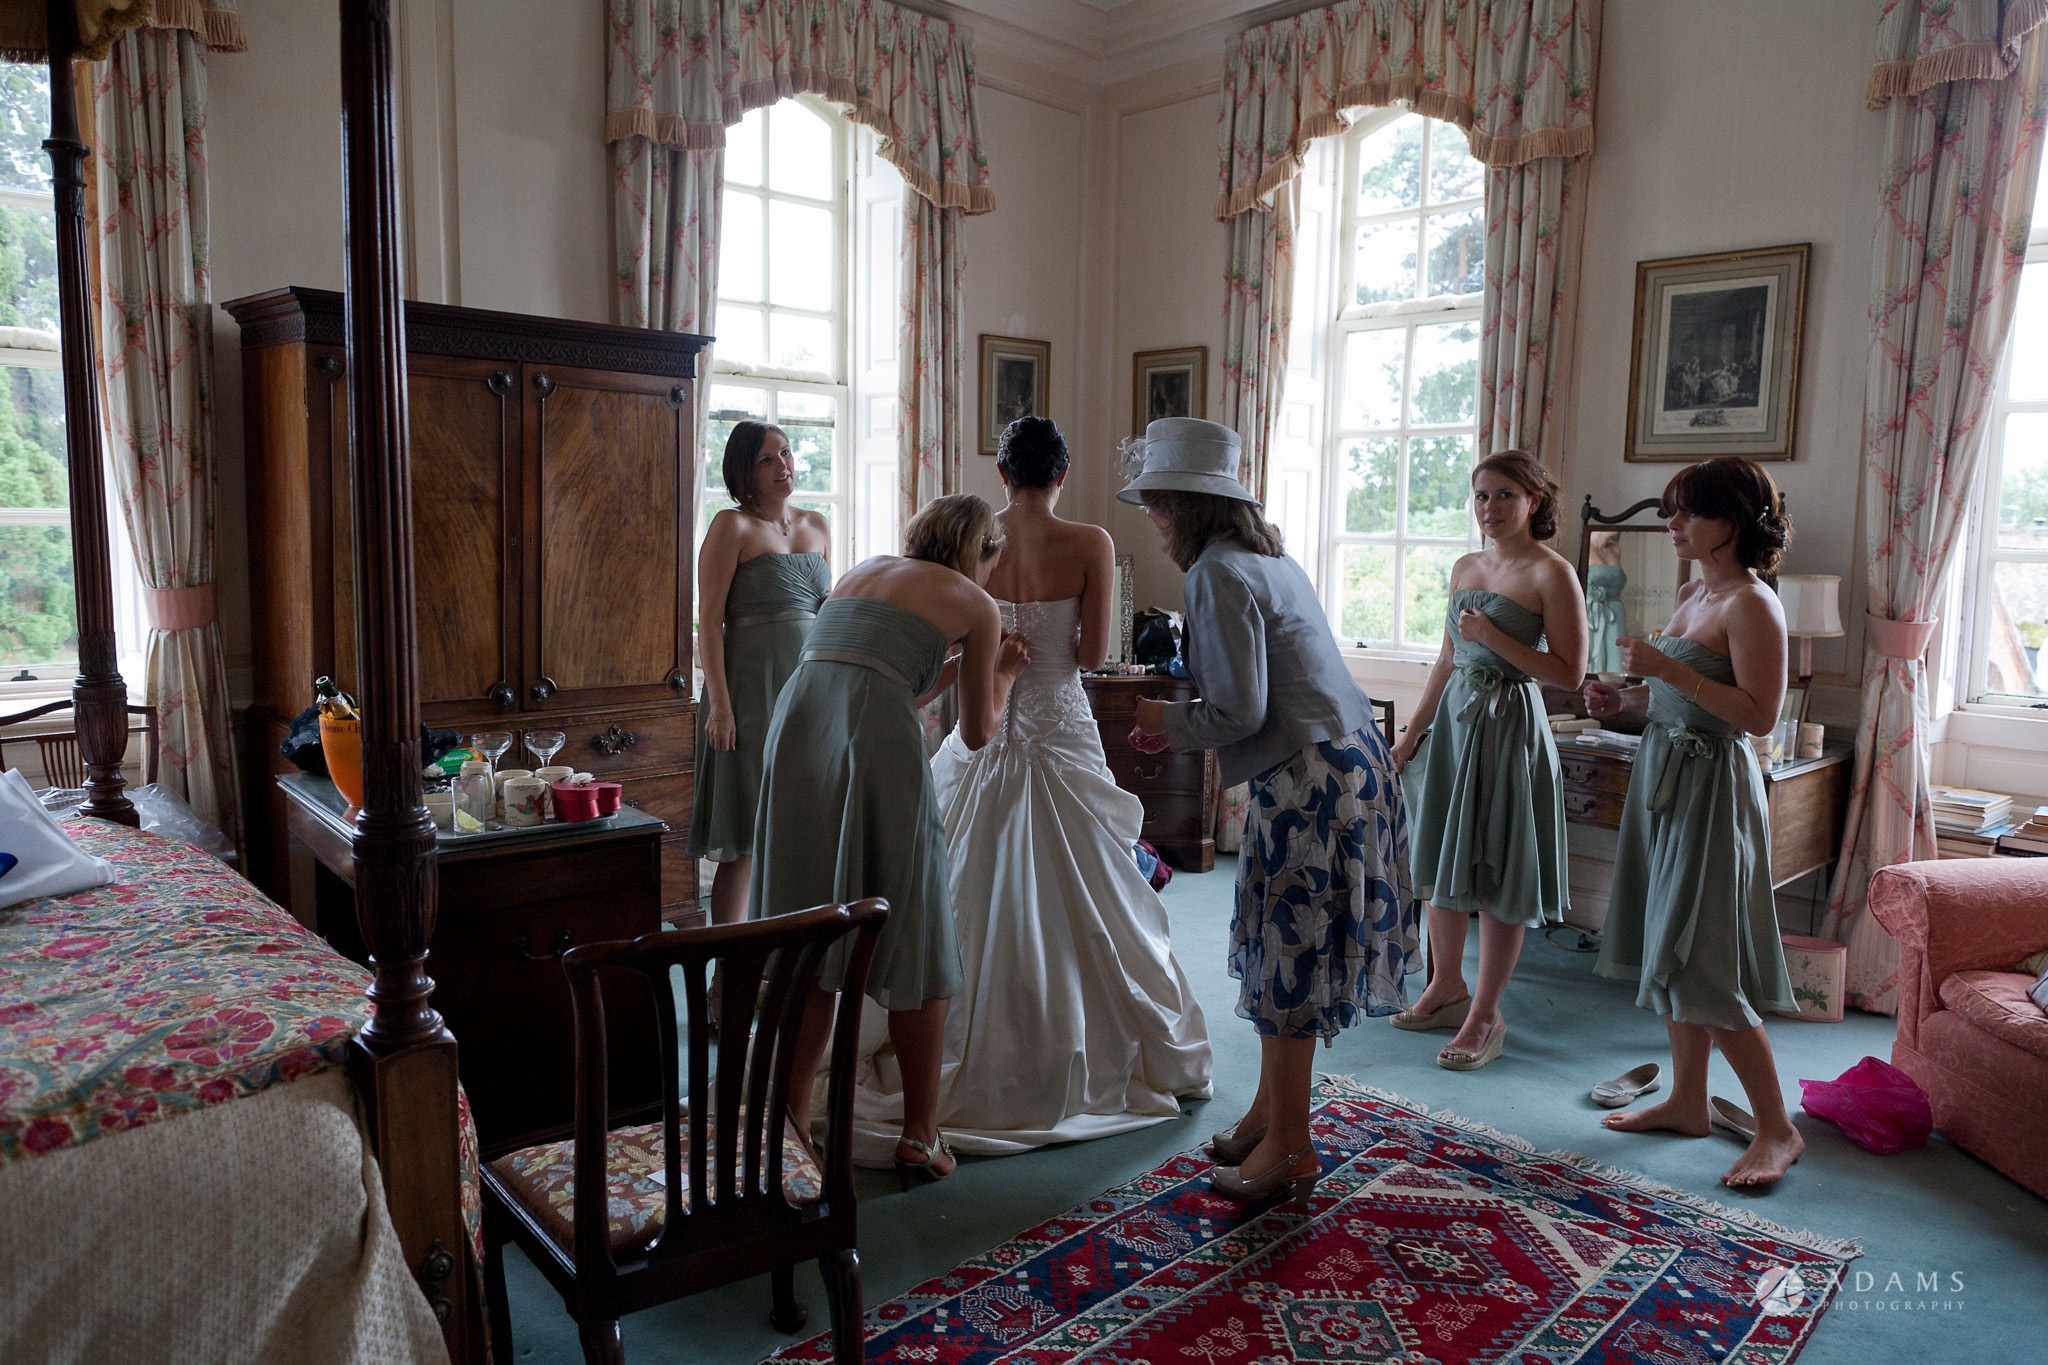 Kingston Bagpuize House wedding in the dress